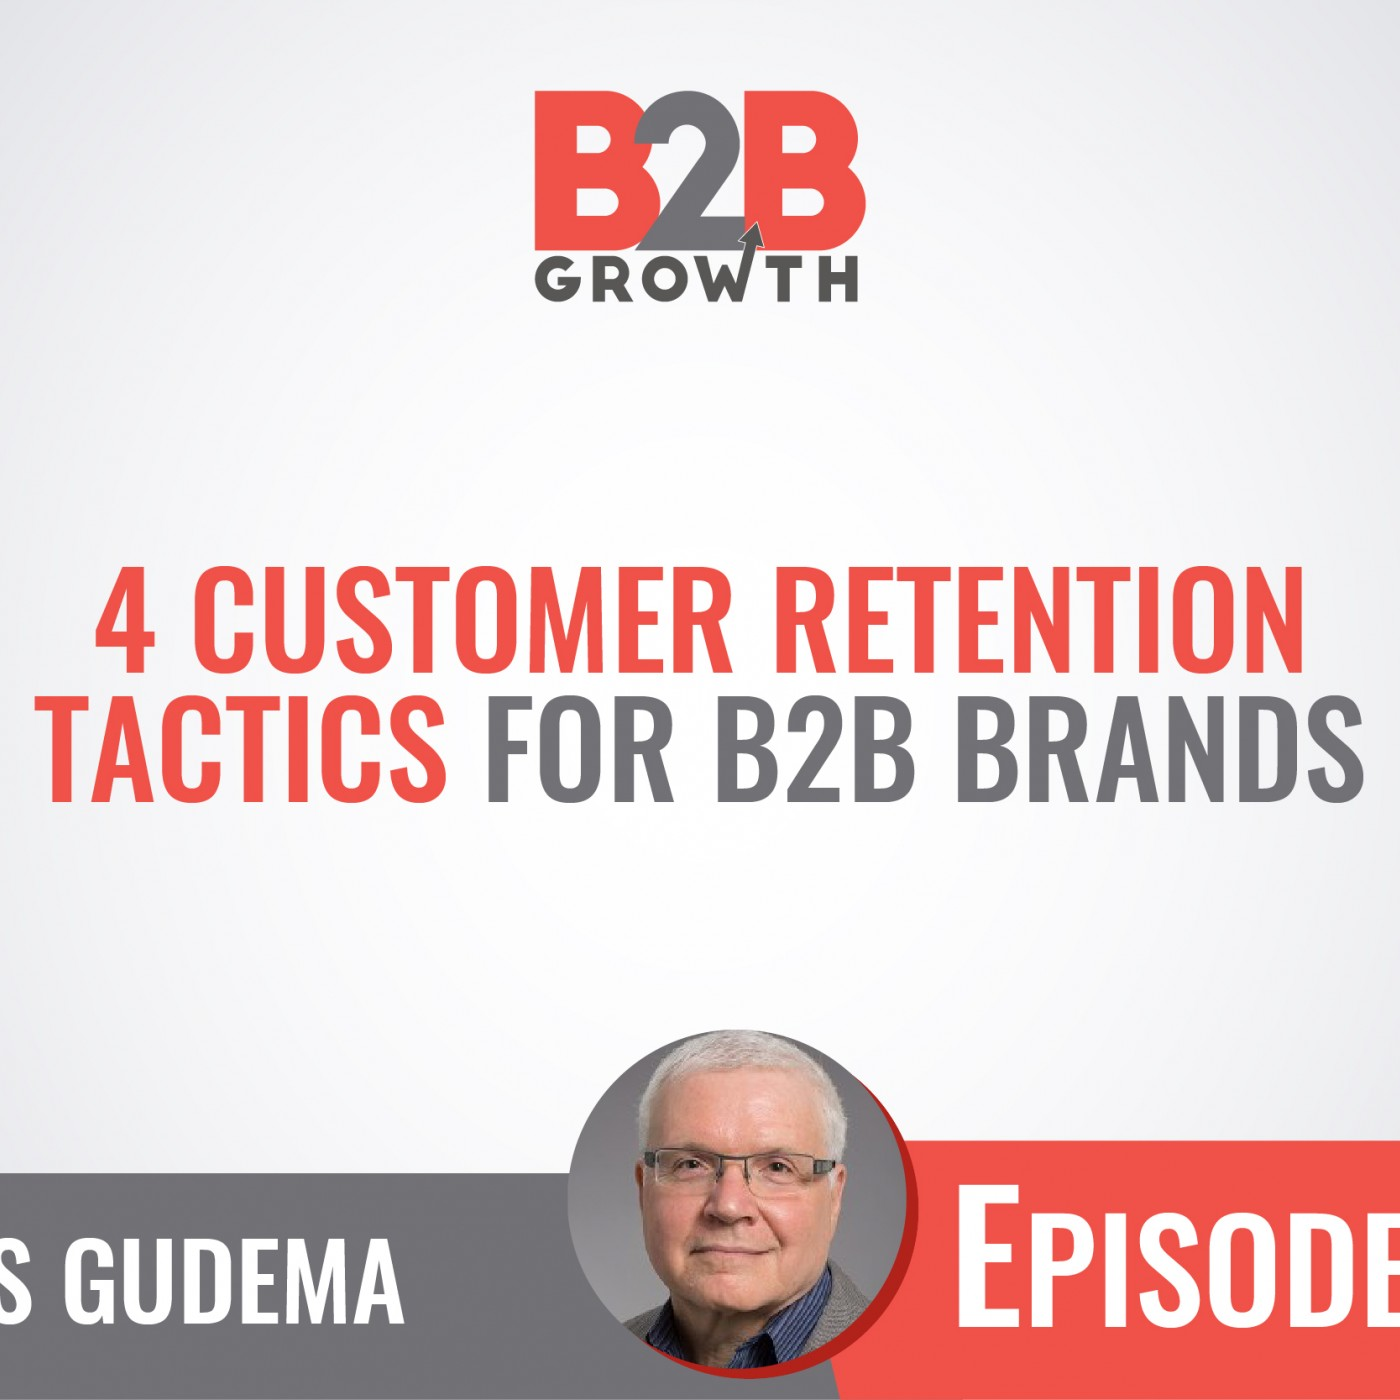 504: 4 Customer Retention Tactics for B2B Brands w/ Louis Gudema